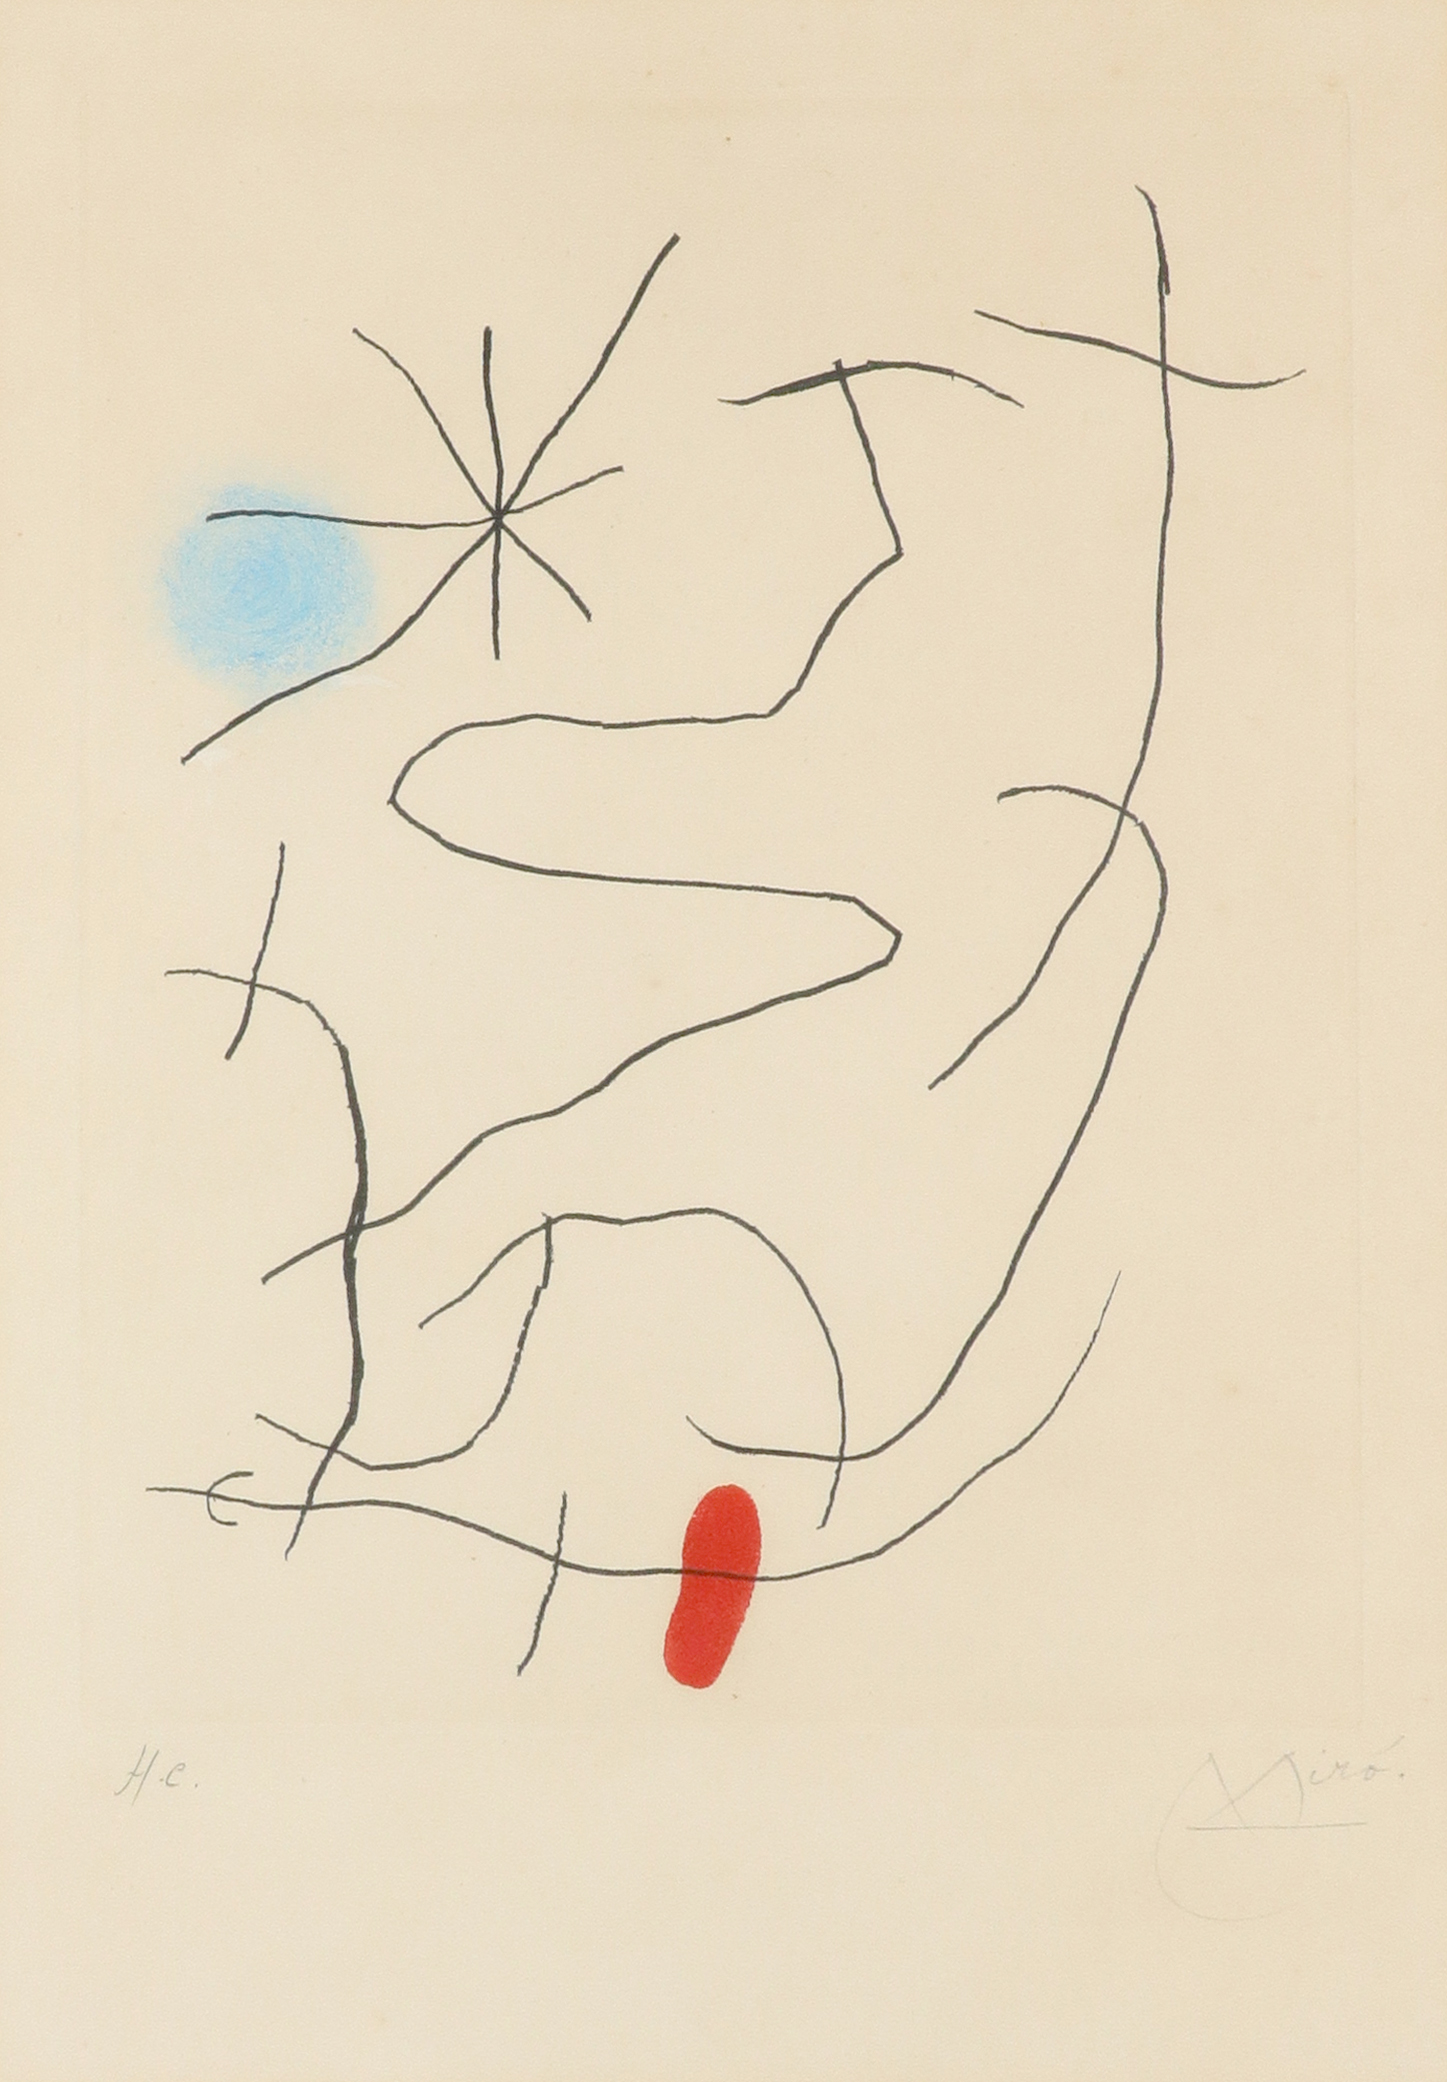 ‡Joan Miró (Spanish 1893-1983) Sonatine II (Dupin 419) Signed and inscribed H.C. Miró. in pencil